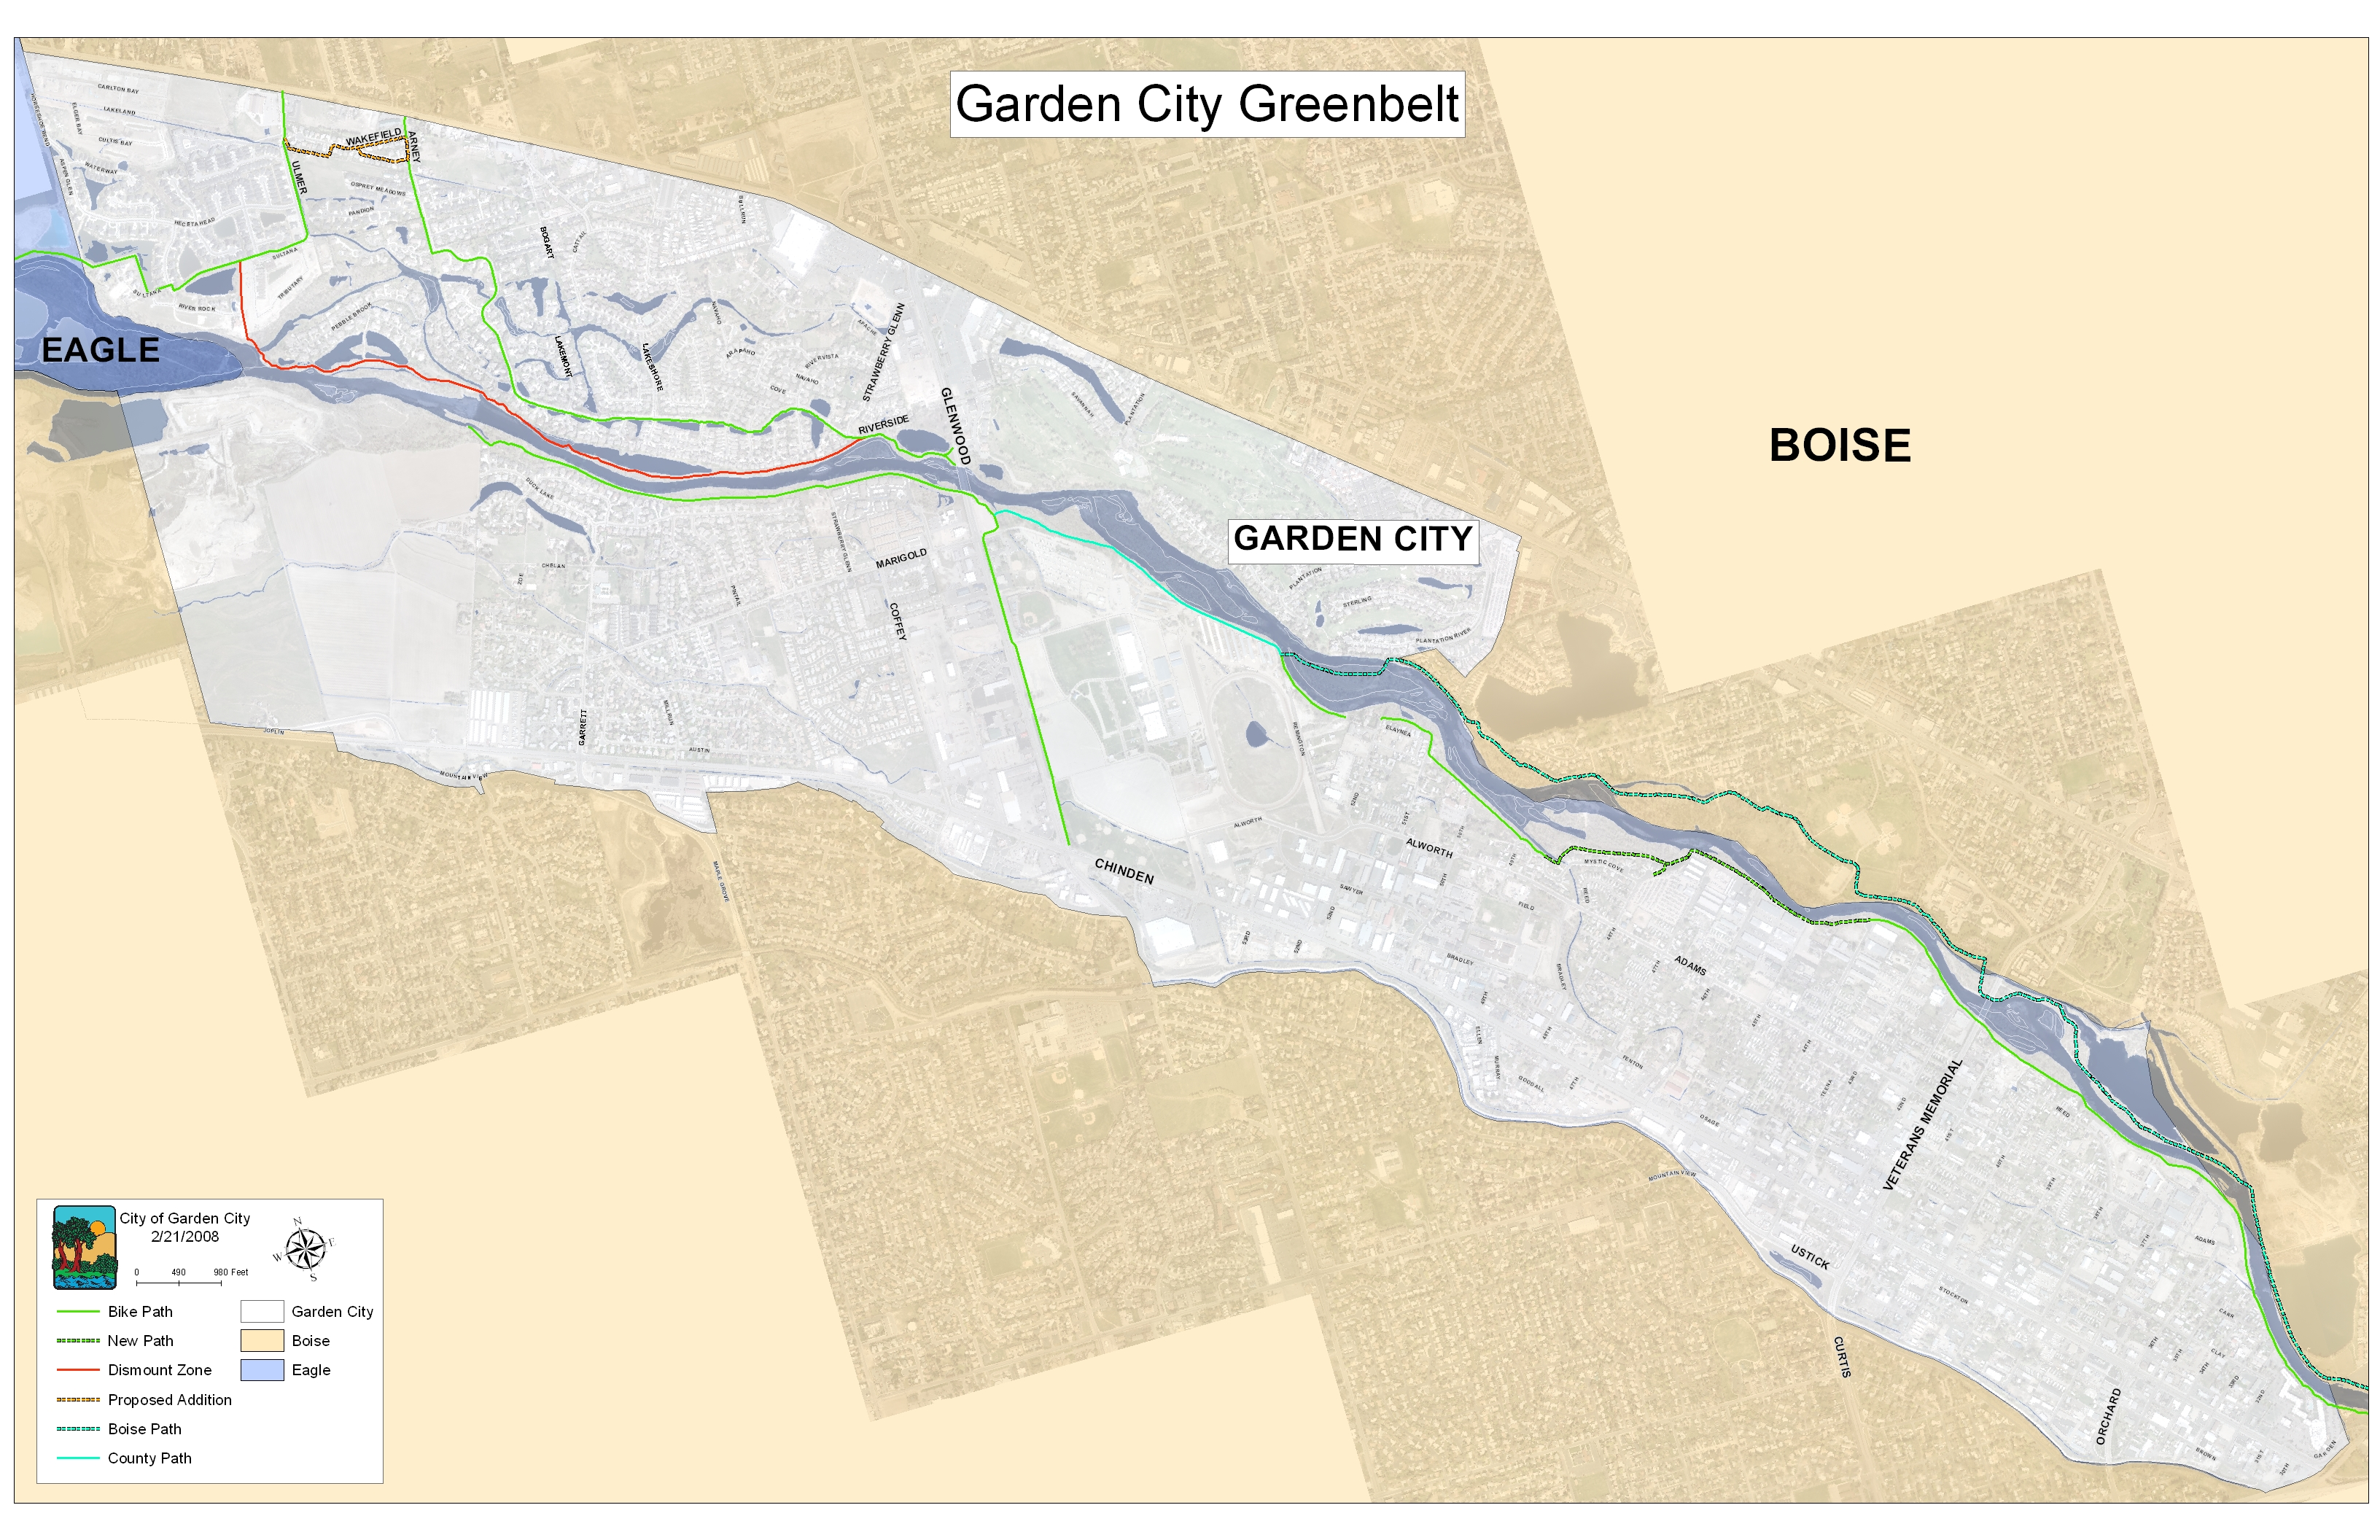 Boise Greenbelt Map Greenbelt Pathway   Garden City, Idaho